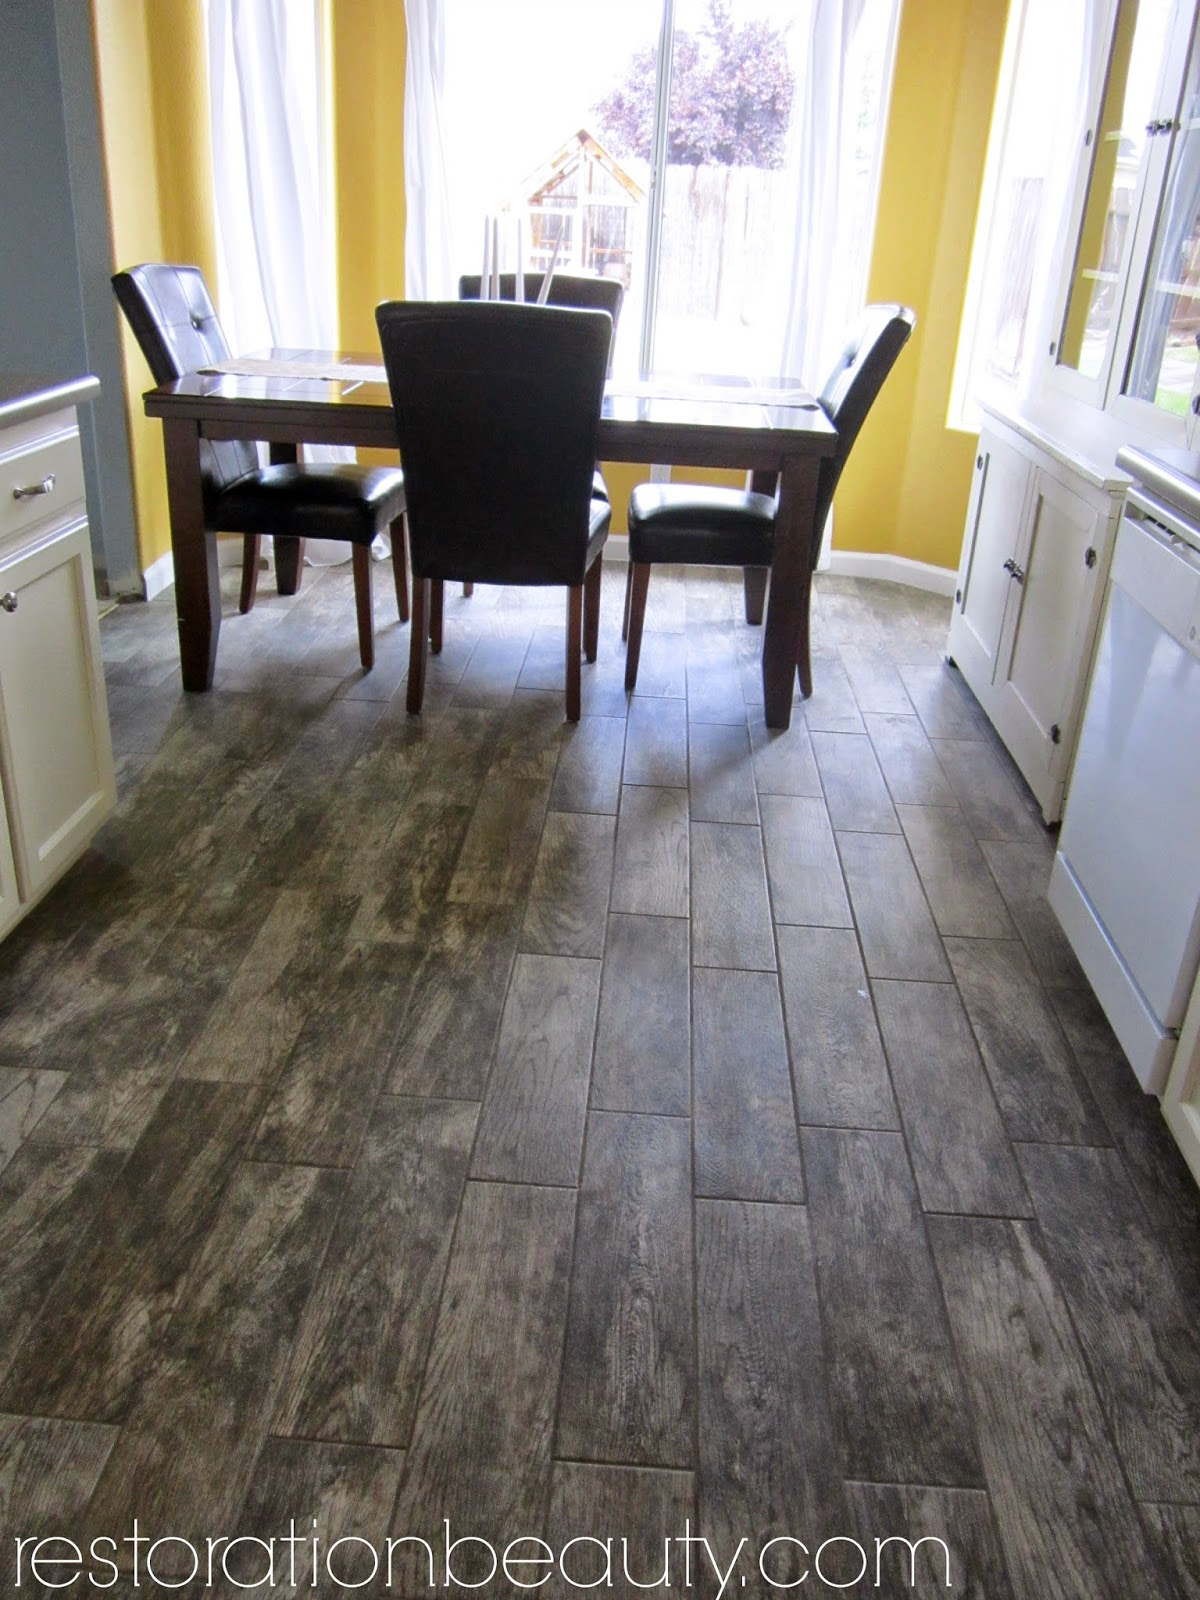 Apr 28, 2014 - Restoration Beauty: Faux Wood Tile Flooring In The Kitchen